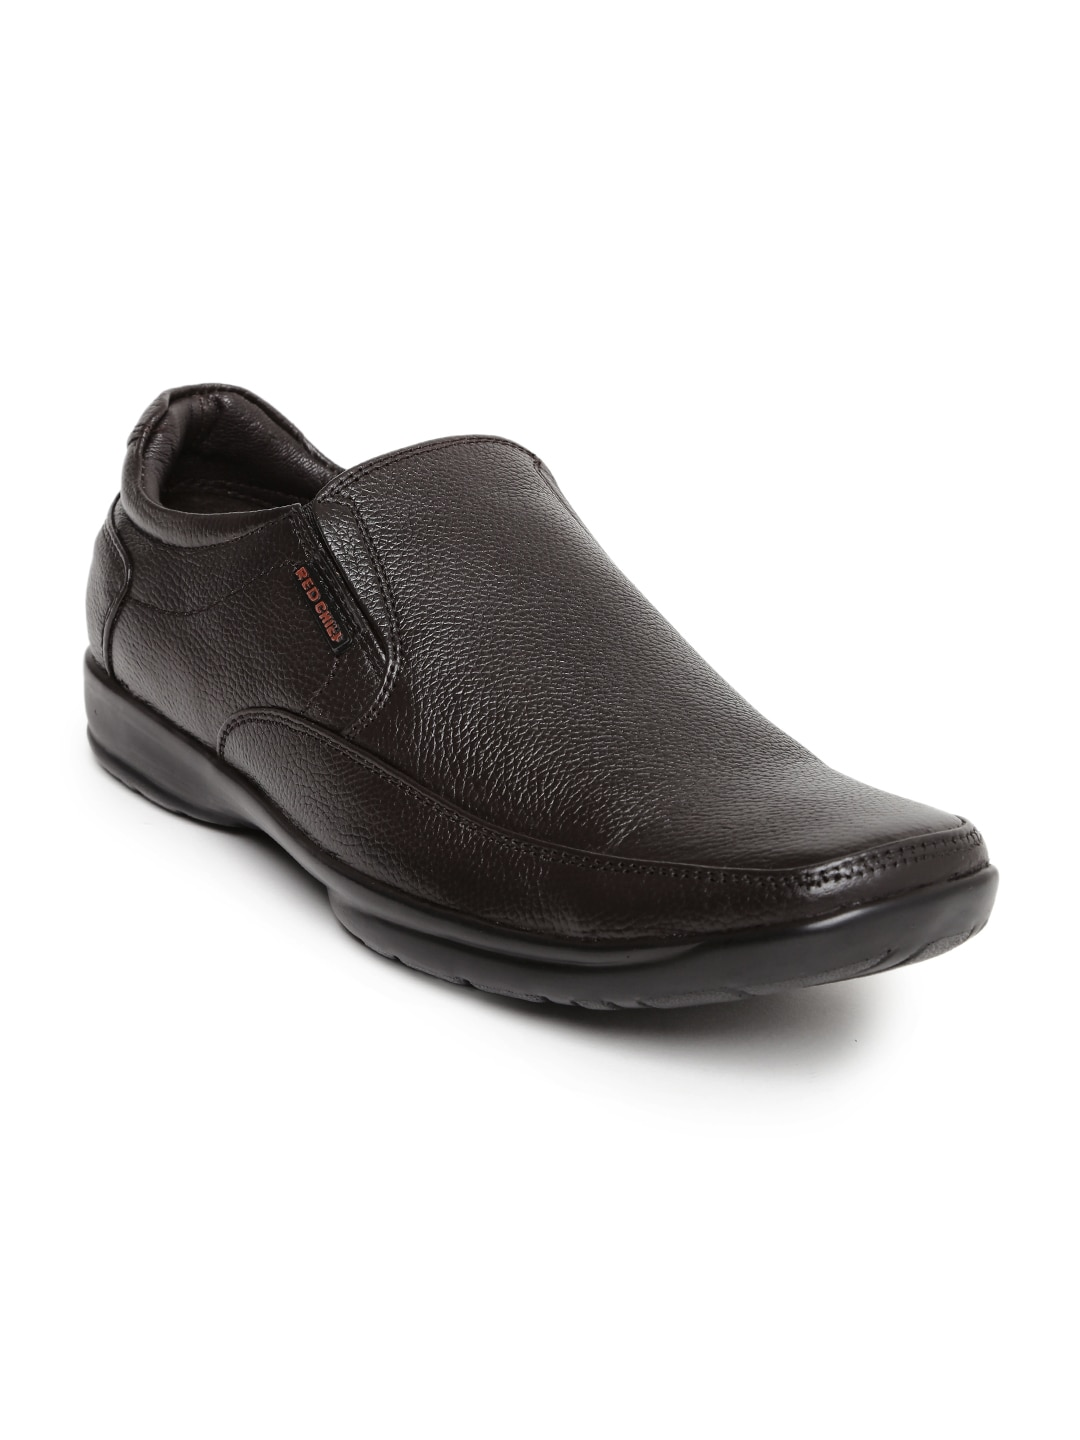 Red Chief Men Dark Brown Leather Slip-Ons image